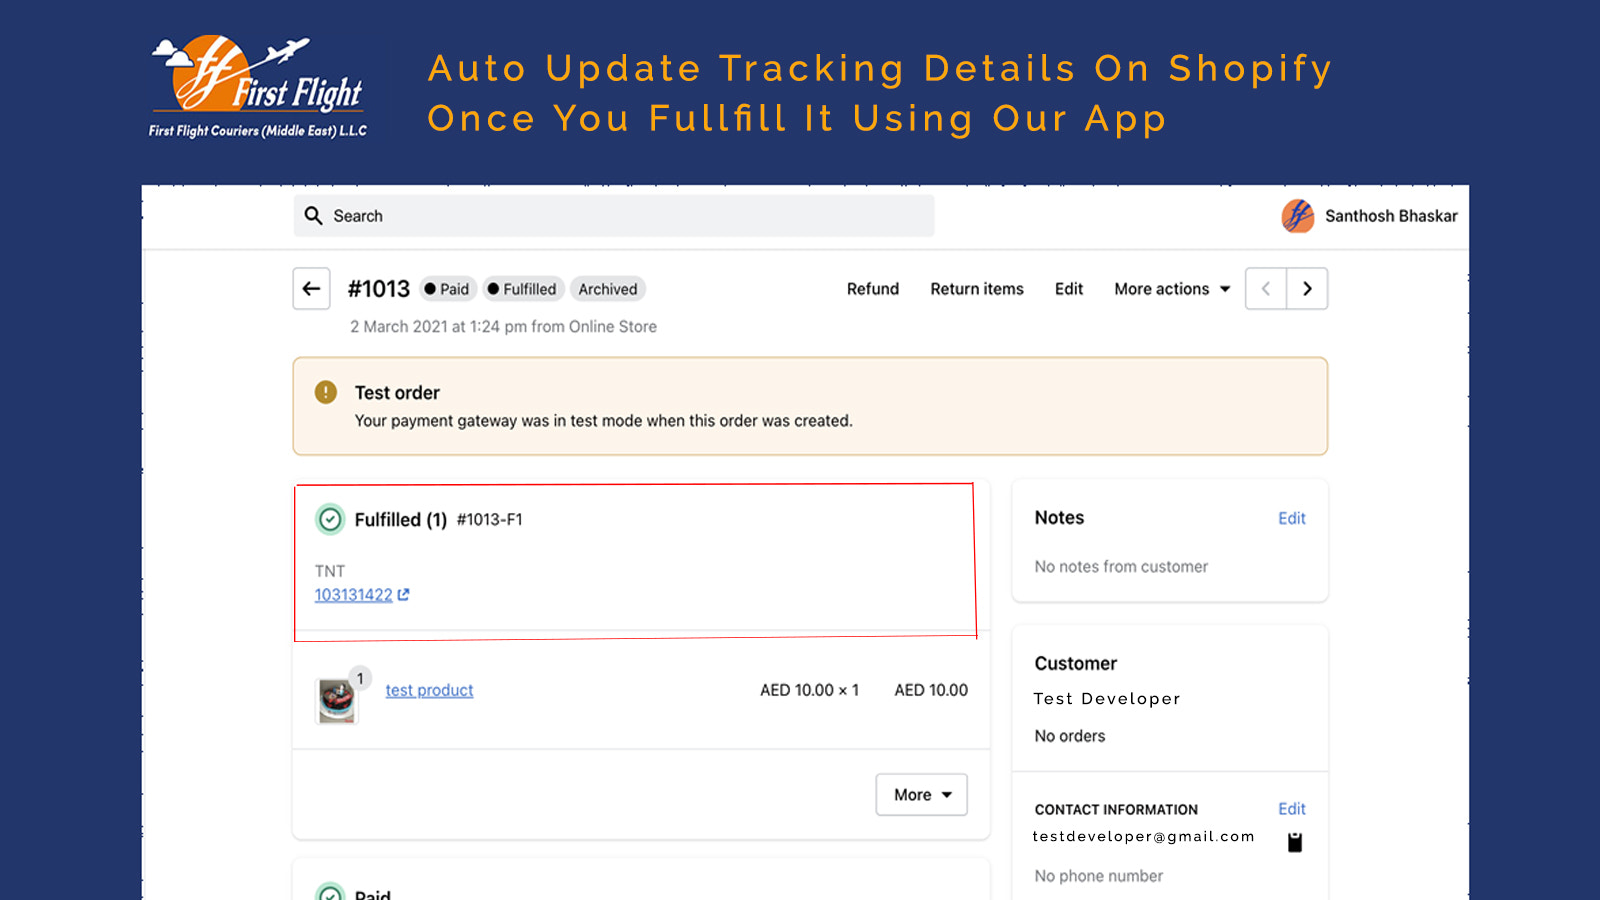 Auto updating tracking details on Shopify once you fulfill it us